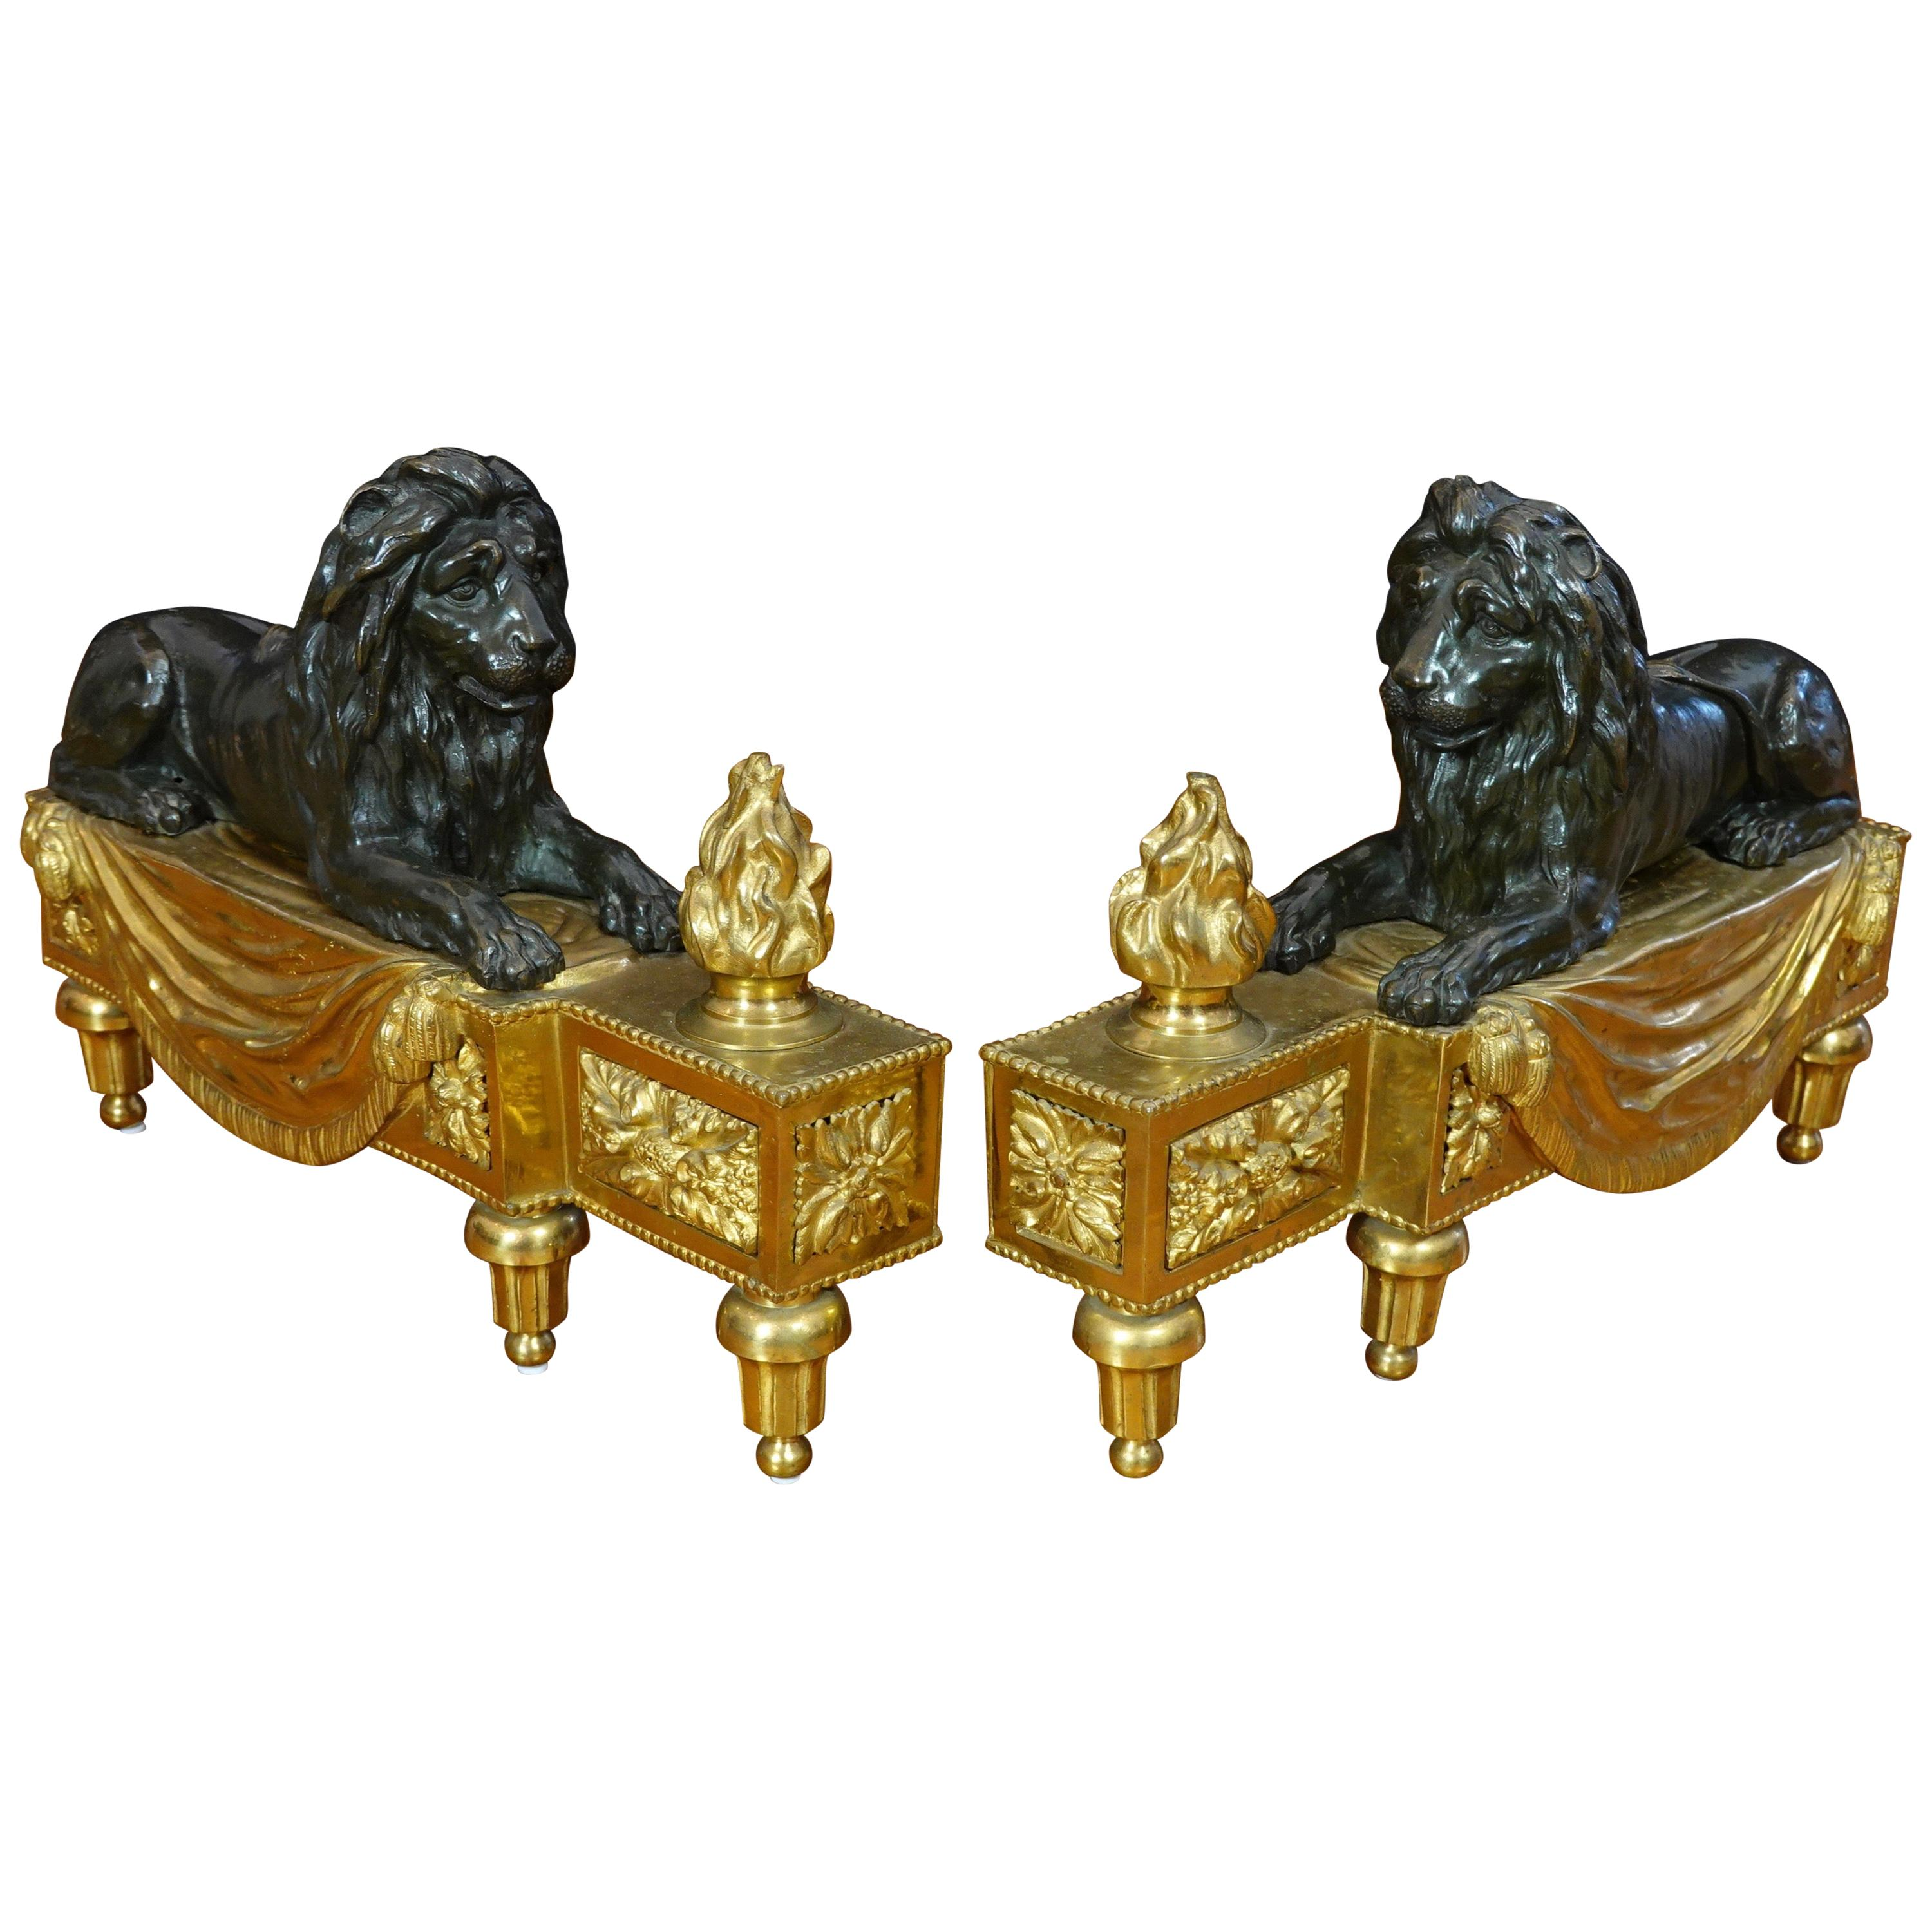 Pair of Louis XVI Style Gilt and Patinated Bronze Lion Chenets or Andirons